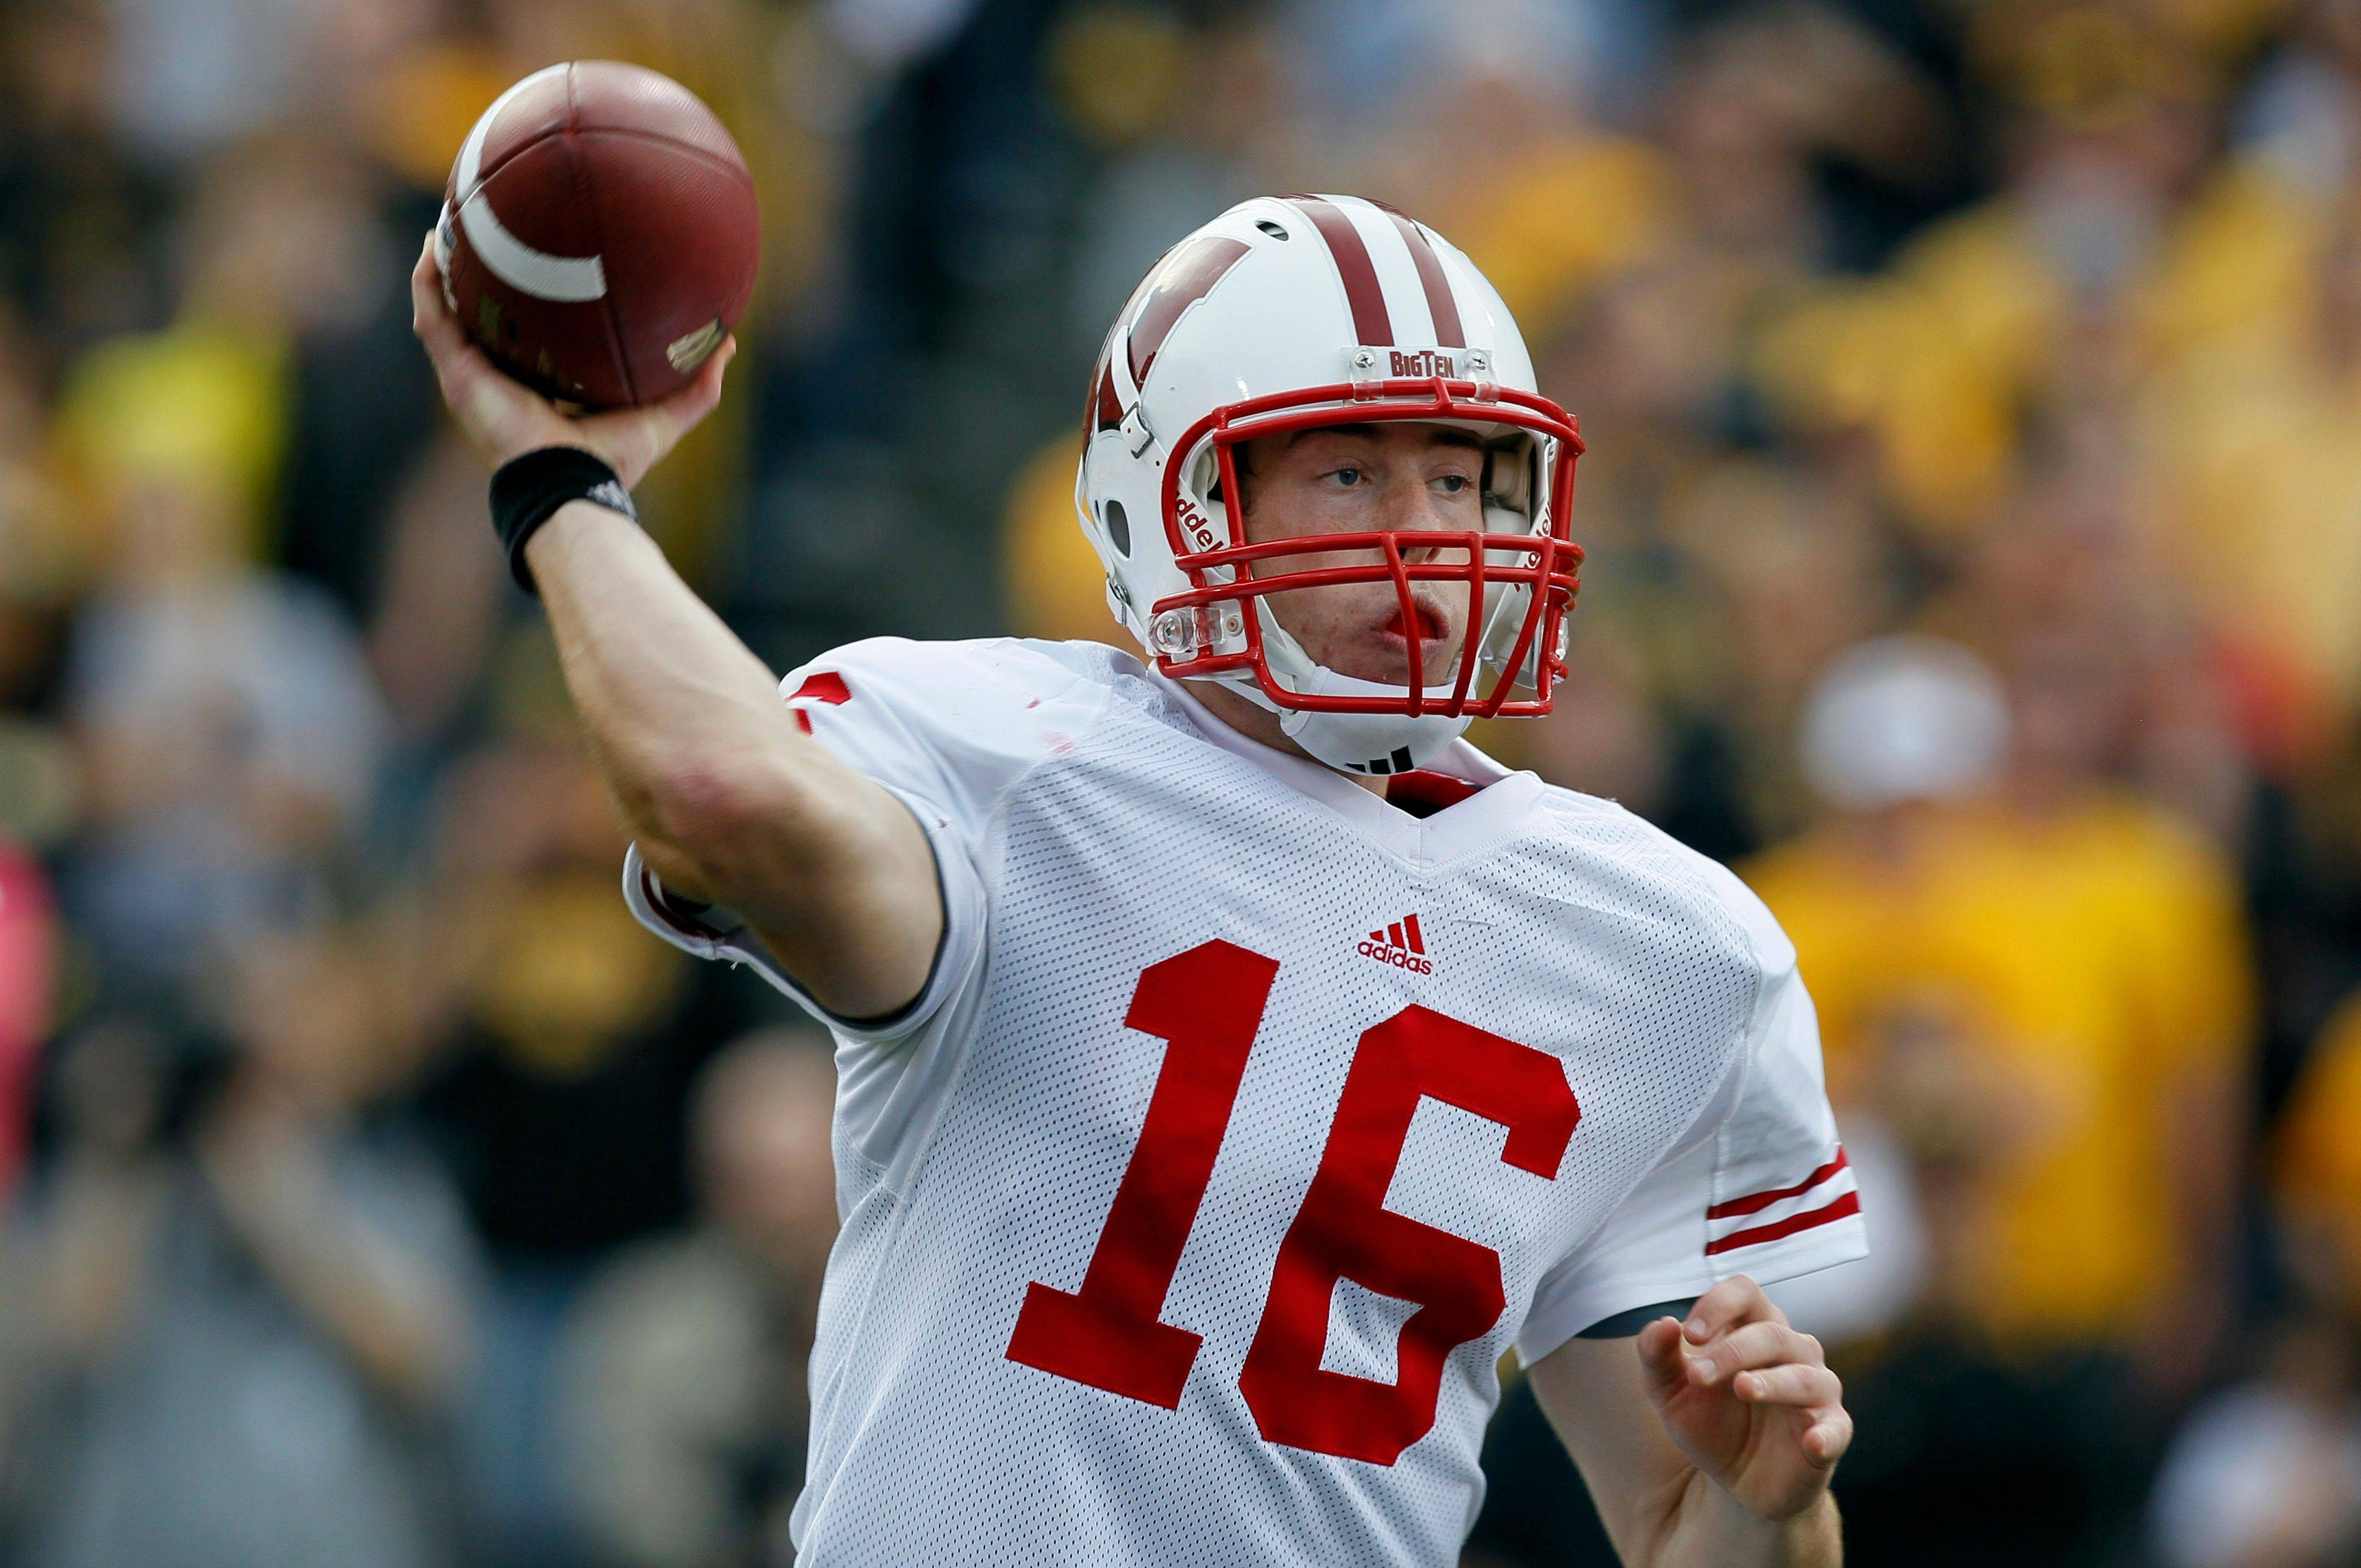 Wisconsin quarterback Scott Tolzien, a Rolling Meadows resident, has completed more than 73 percent of his passes this season.